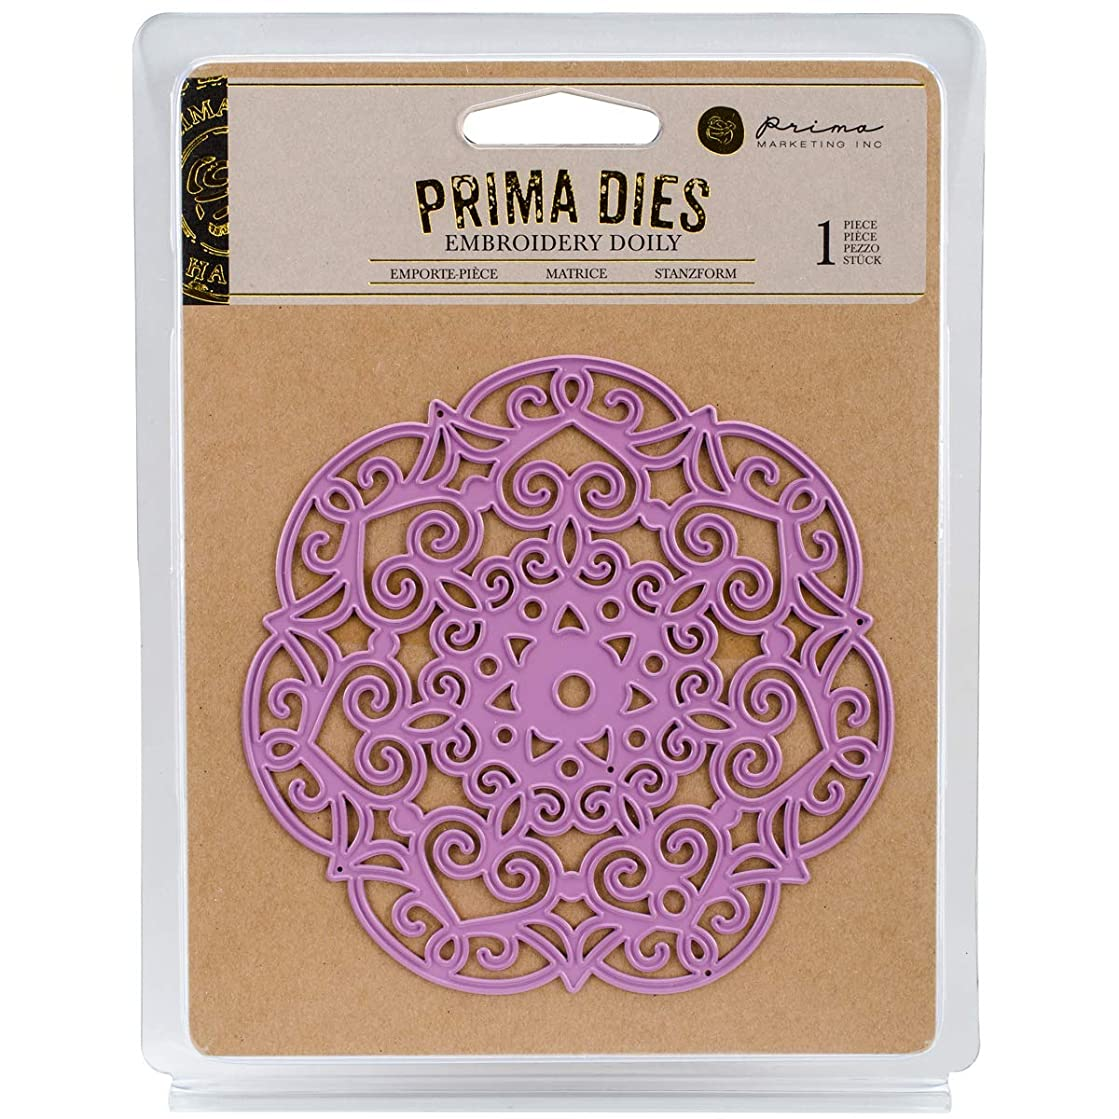 Prima Marketing 655350584009 Embroidery Doily Scrapbooking Dies